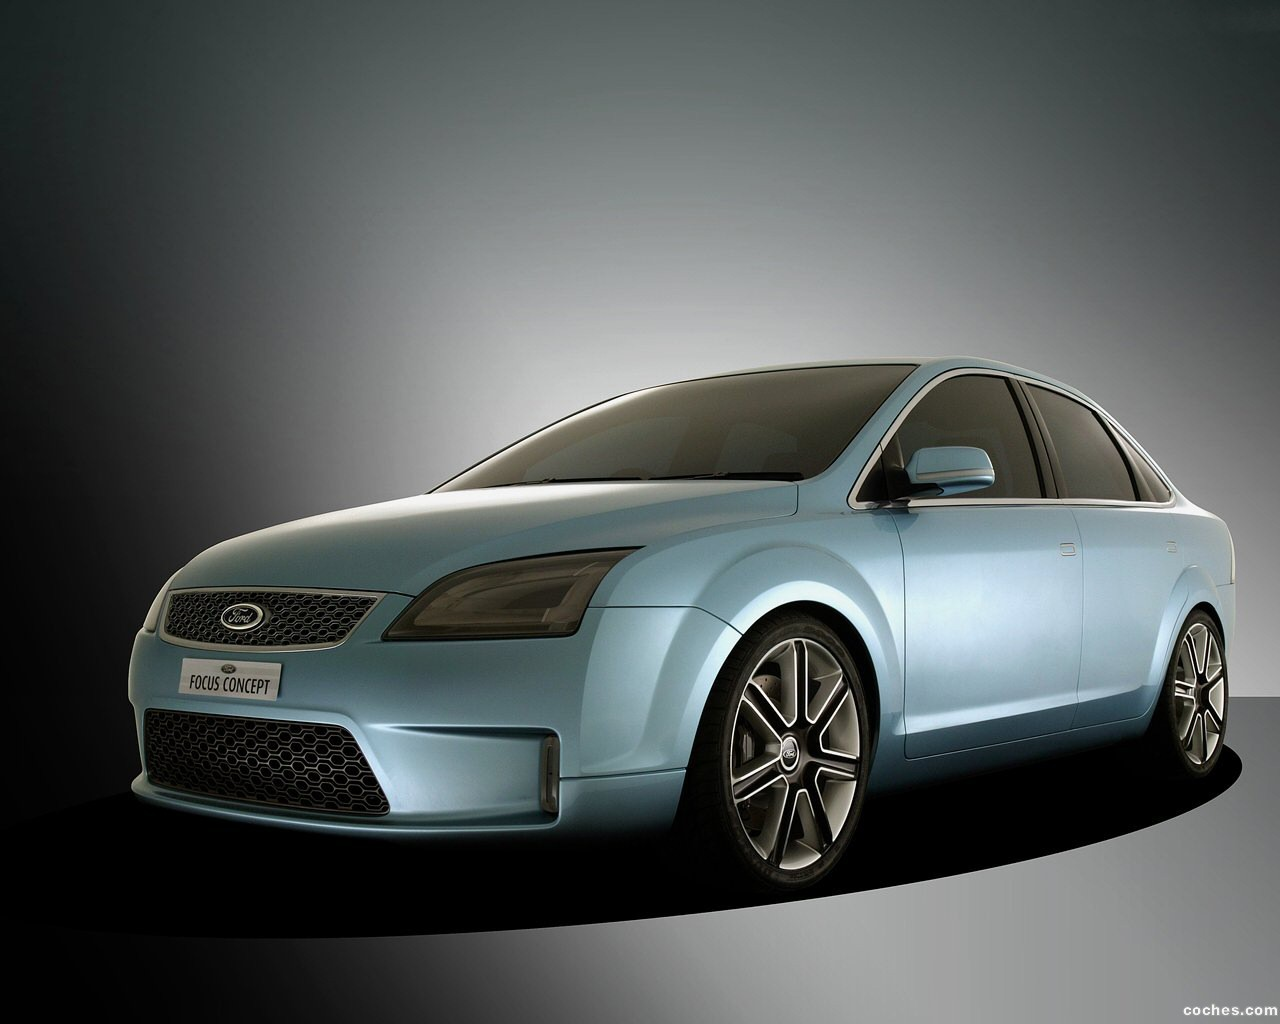 Foto 0 de Ford Focus Concept 4 door 2004